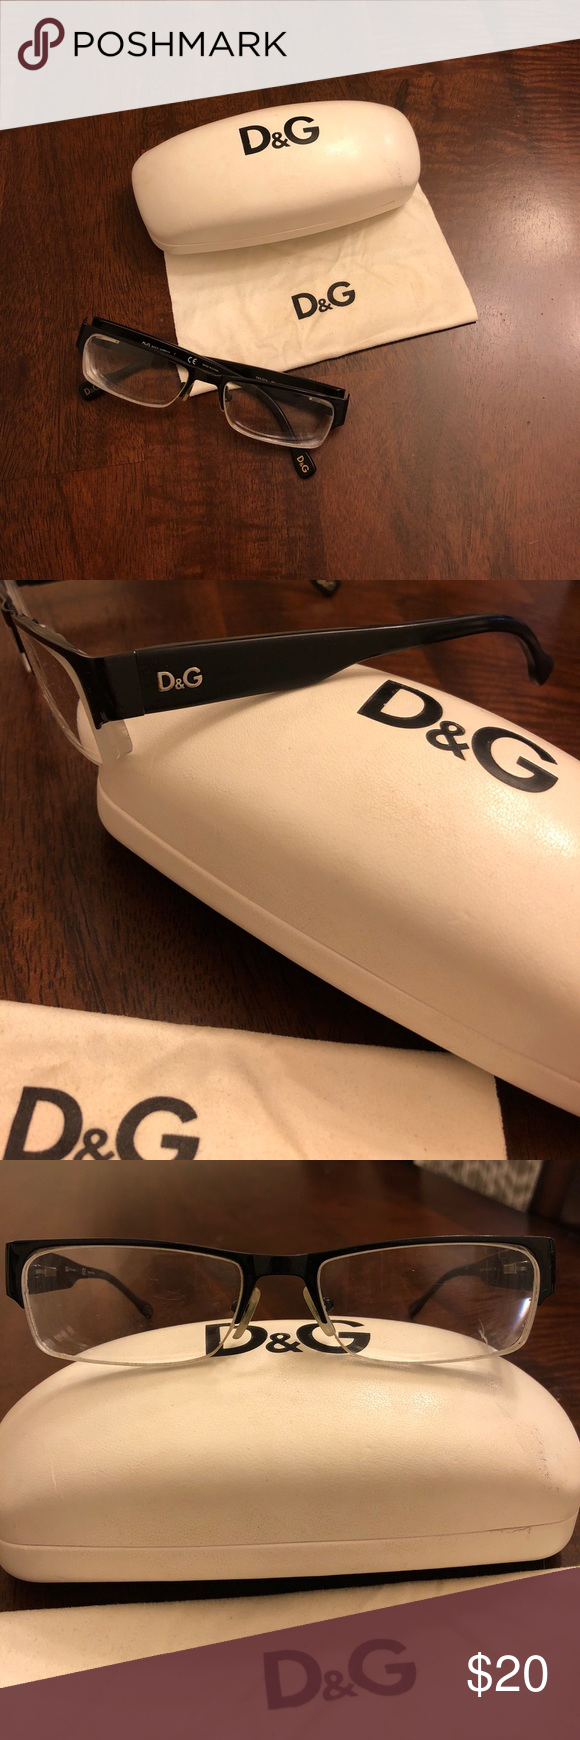 D&G Frames Gently used. Frames can be reused and are in good ...